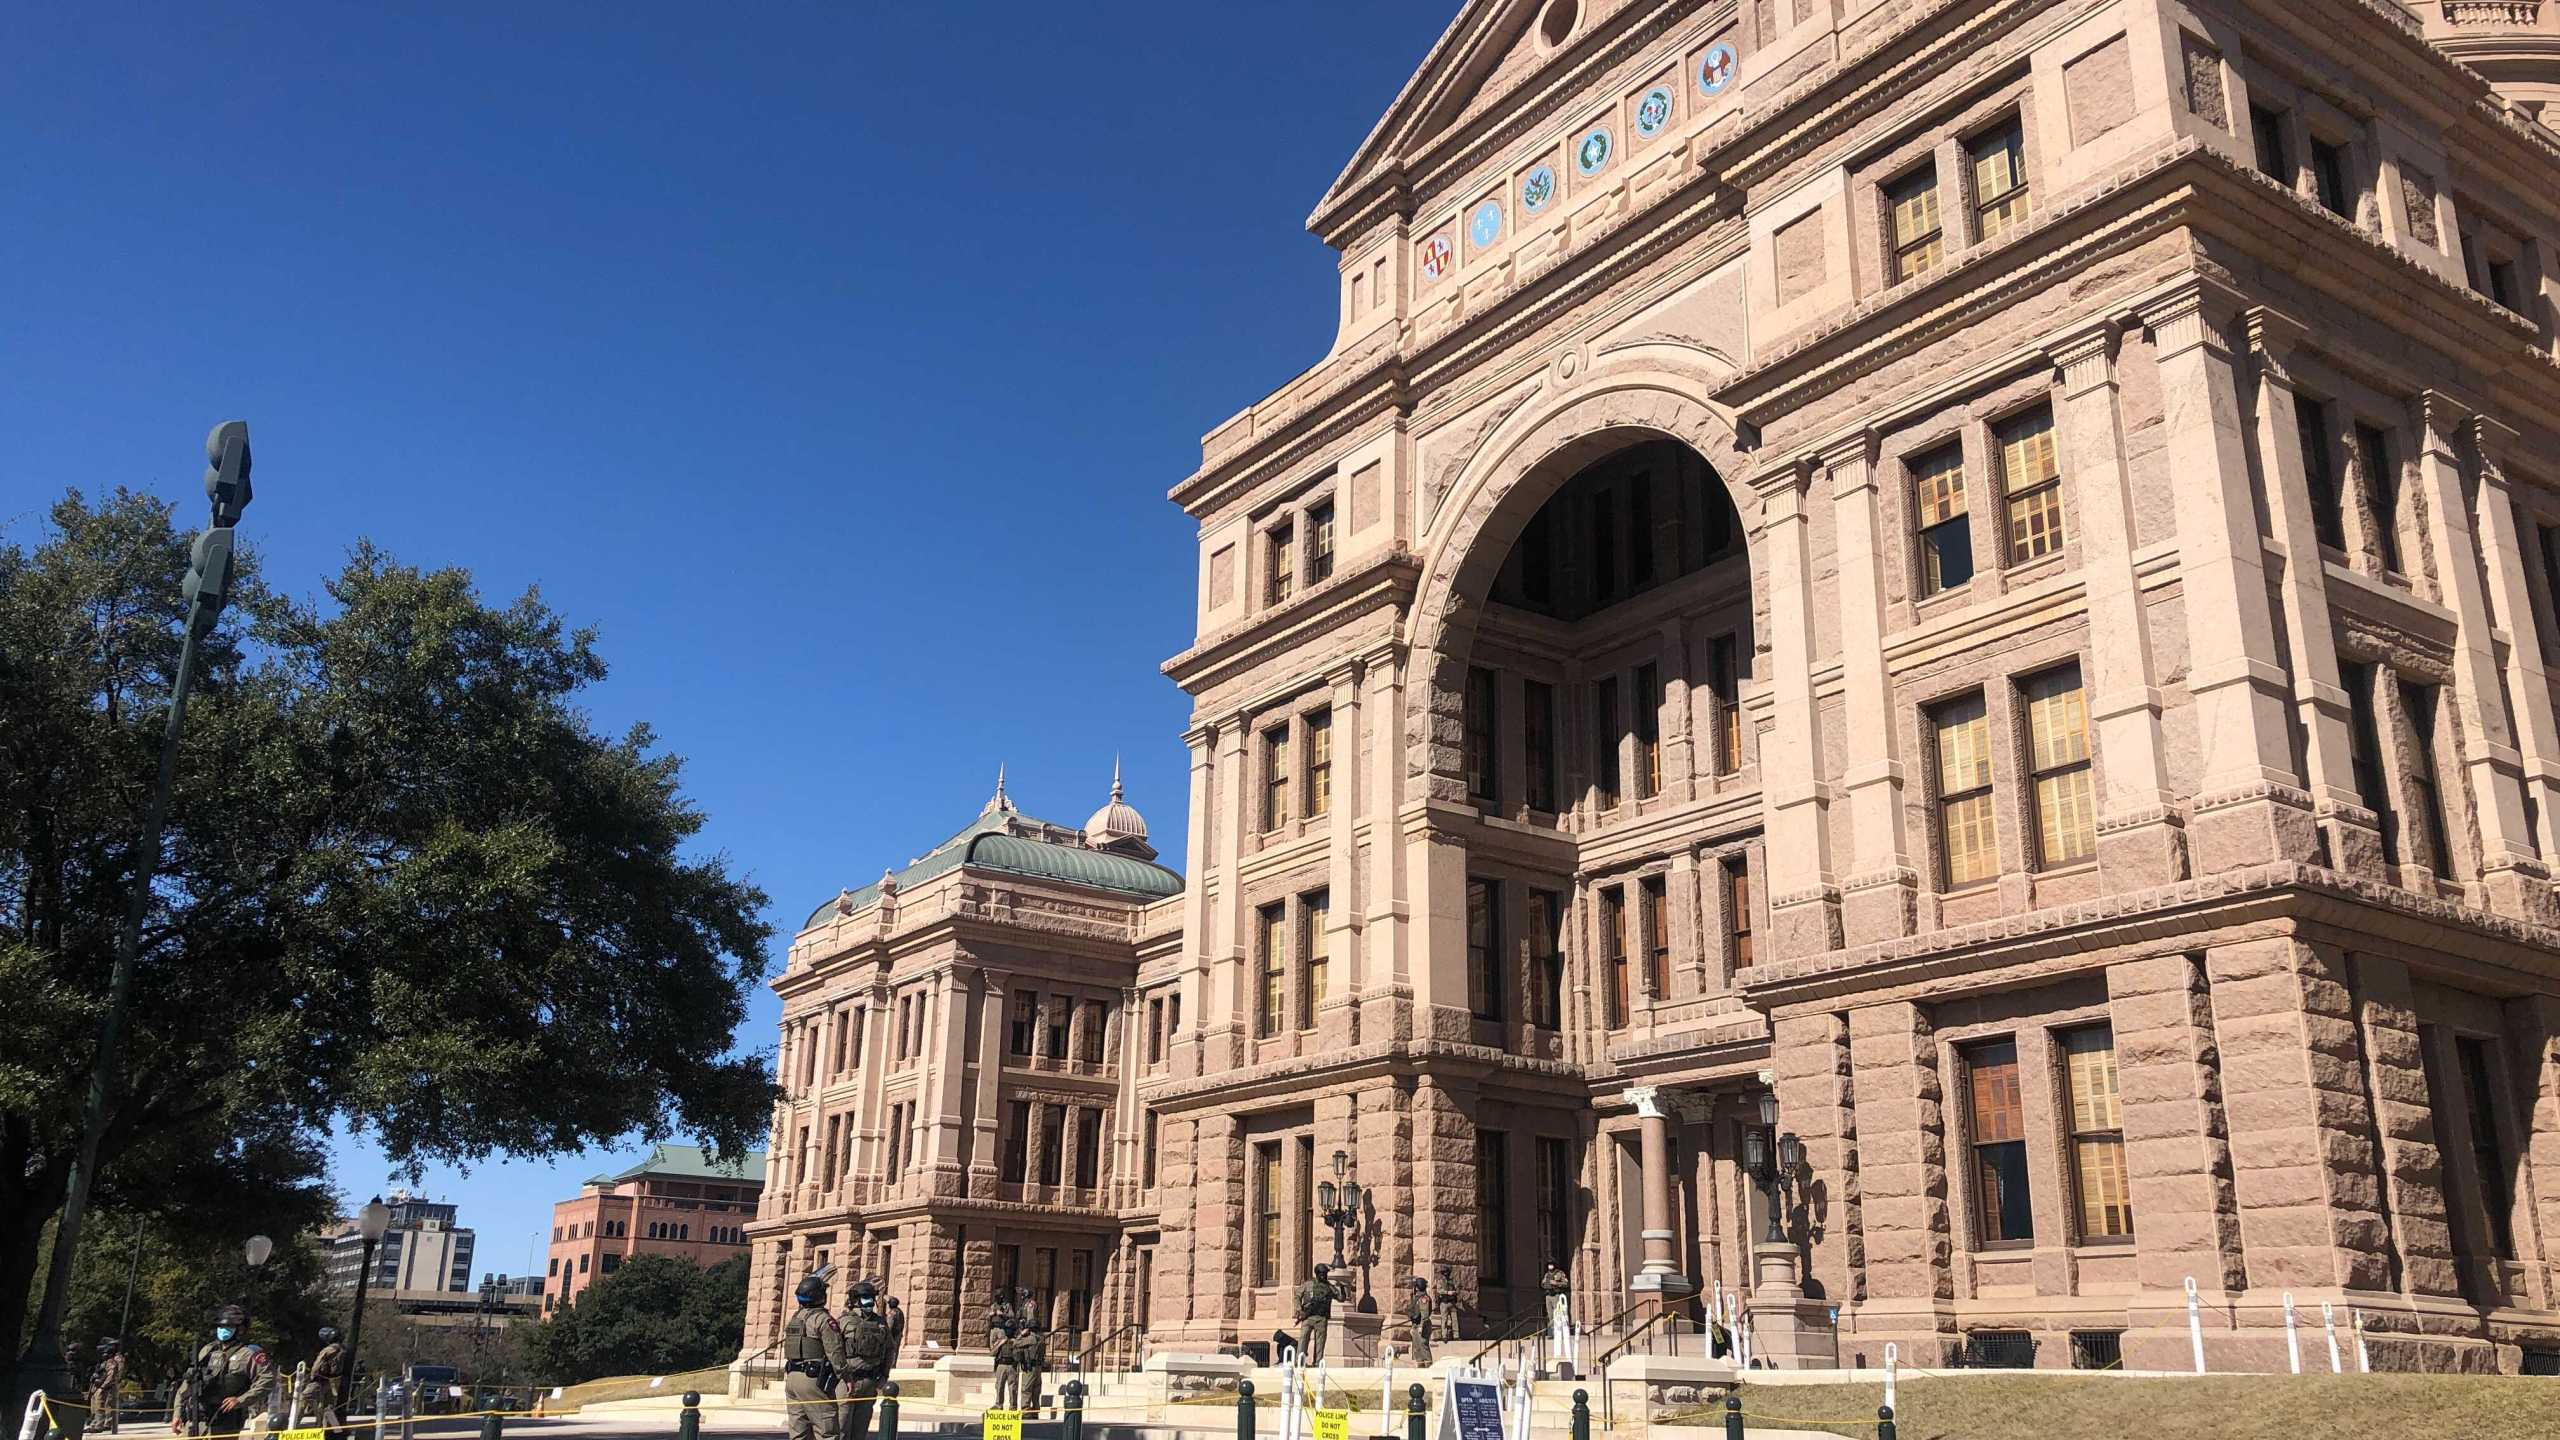 Texas DPS patrols outside the Texas State Capitol as the legislative session gets underway and Inauguration Day inches closer (KXAN/Frank Martinez)